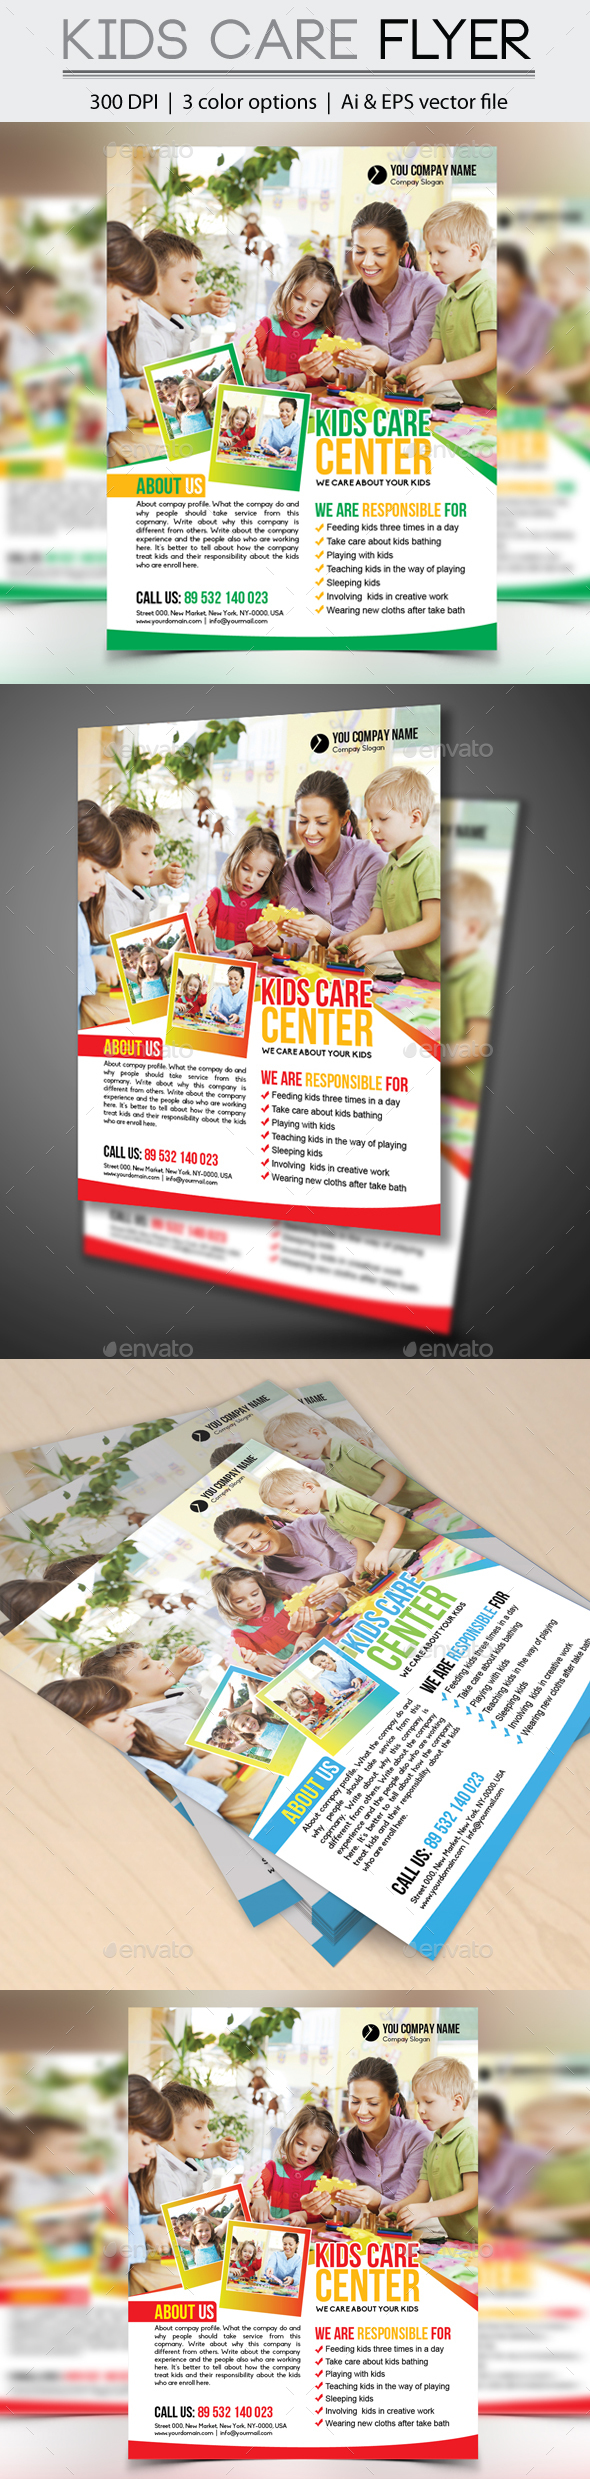 Kids Care Flyer - Flyers Print Templates